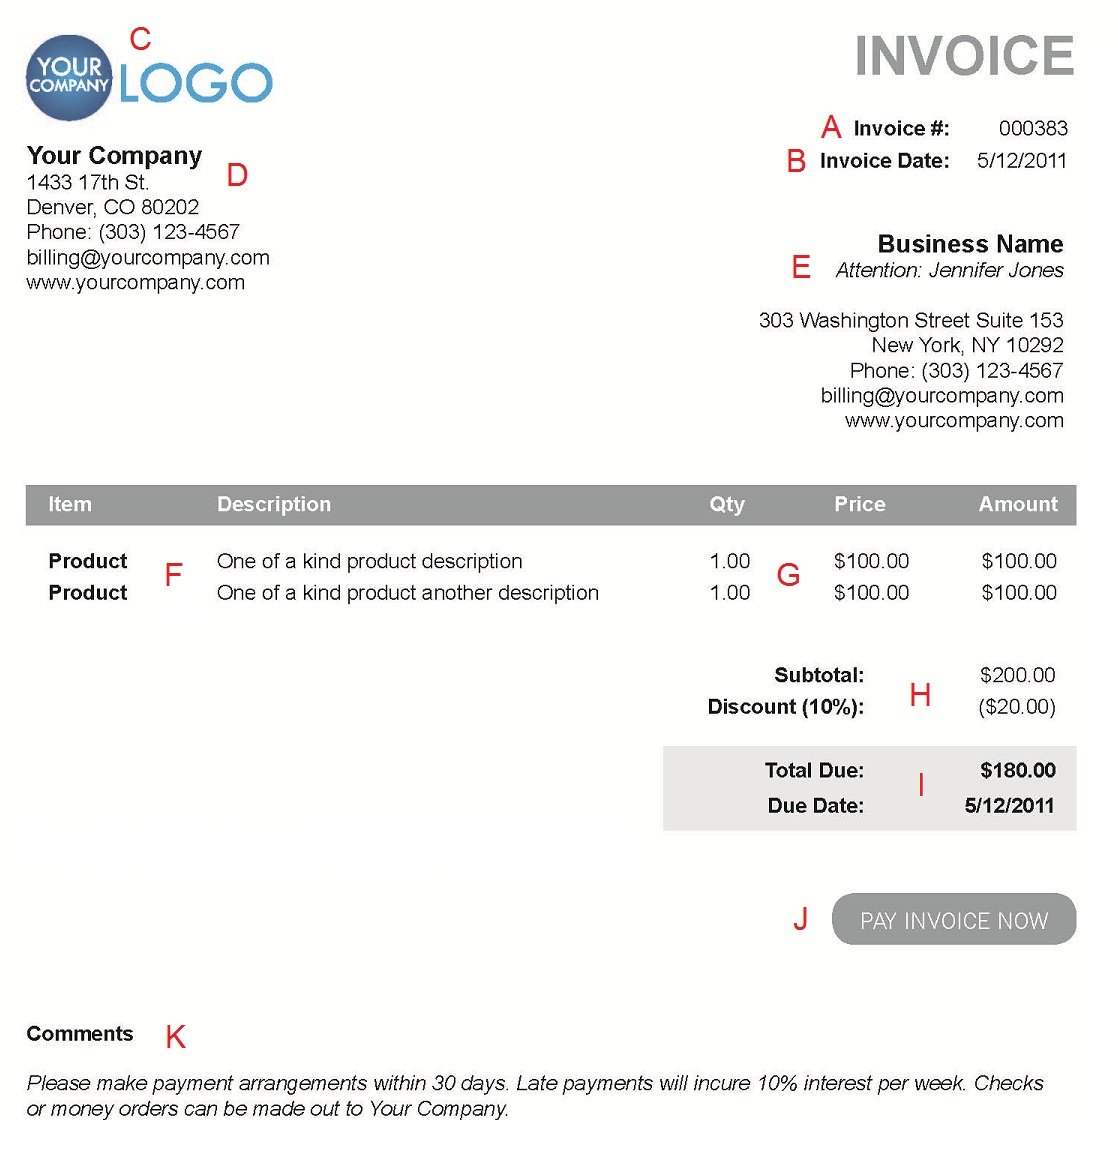 Aaaaeroincus  Mesmerizing The  Different Sections Of An Electronic Payment Invoice With Fascinating A  With Easy On The Eye Gmc Acadia Invoice Price Also Online Invoicing System In Addition Sample Commercial Invoice And Template For An Invoice As Well As Invoice Cost Additionally Generic Invoice Template Word From Paysimplecom With Aaaaeroincus  Fascinating The  Different Sections Of An Electronic Payment Invoice With Easy On The Eye A  And Mesmerizing Gmc Acadia Invoice Price Also Online Invoicing System In Addition Sample Commercial Invoice From Paysimplecom